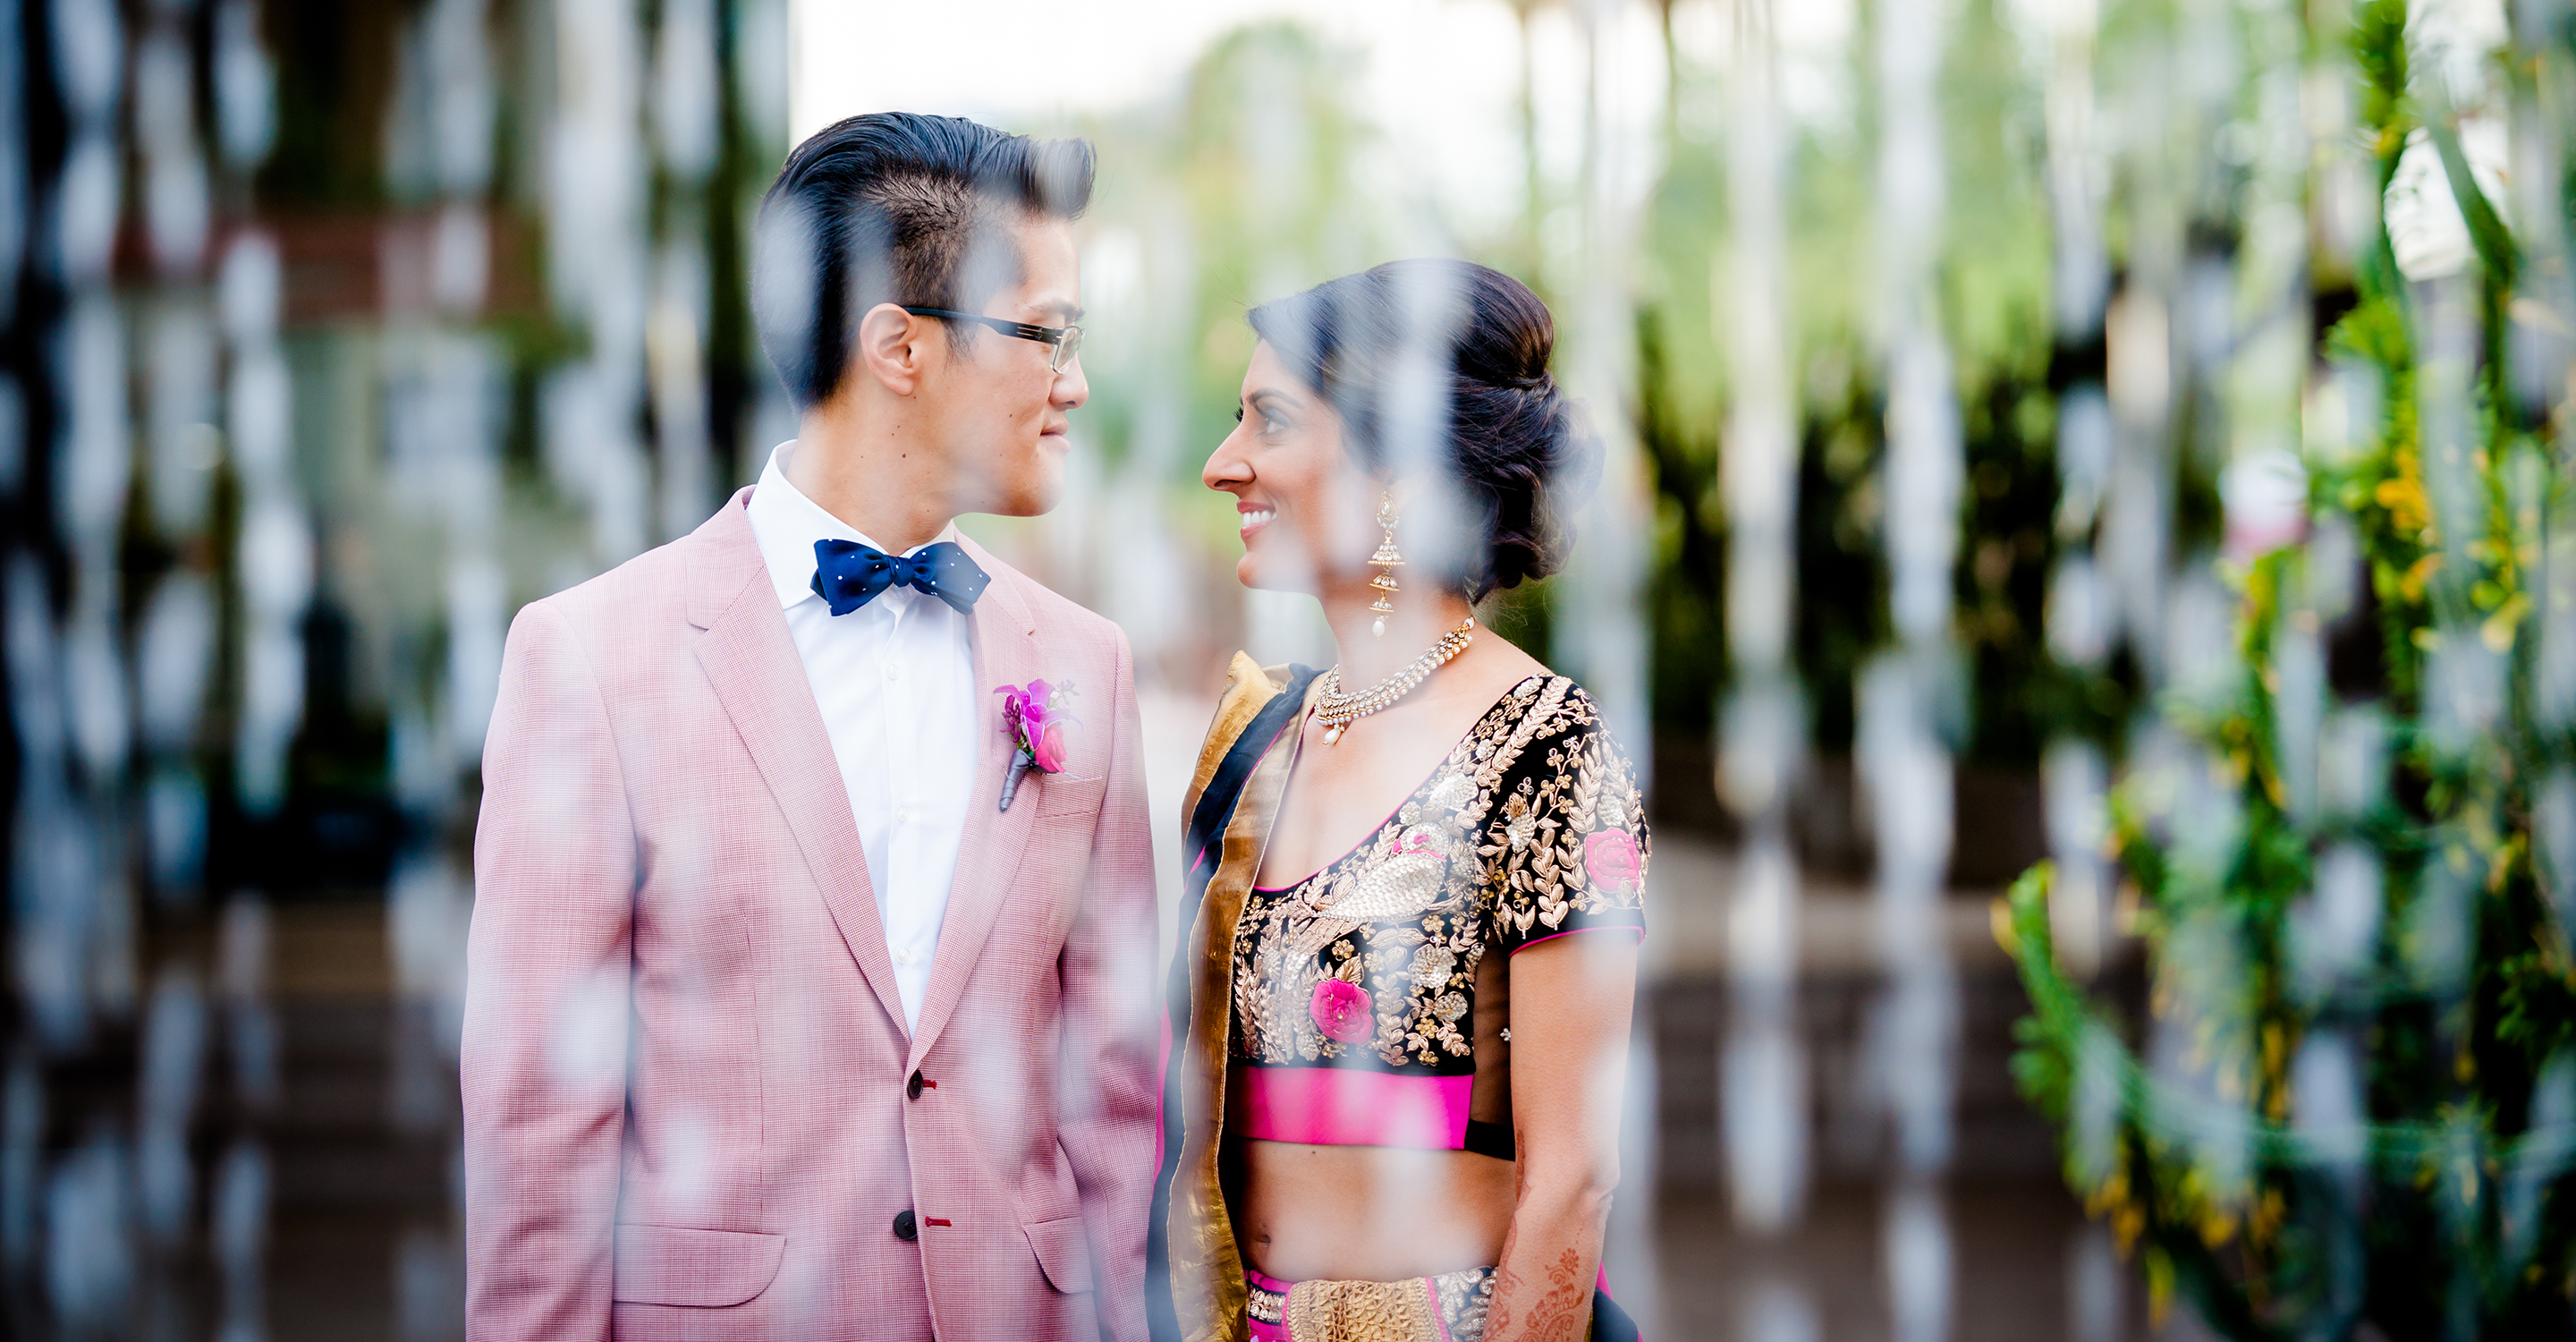 Multicultural wedding in Phoenix Art Museum. Indian bride and Chinese groom